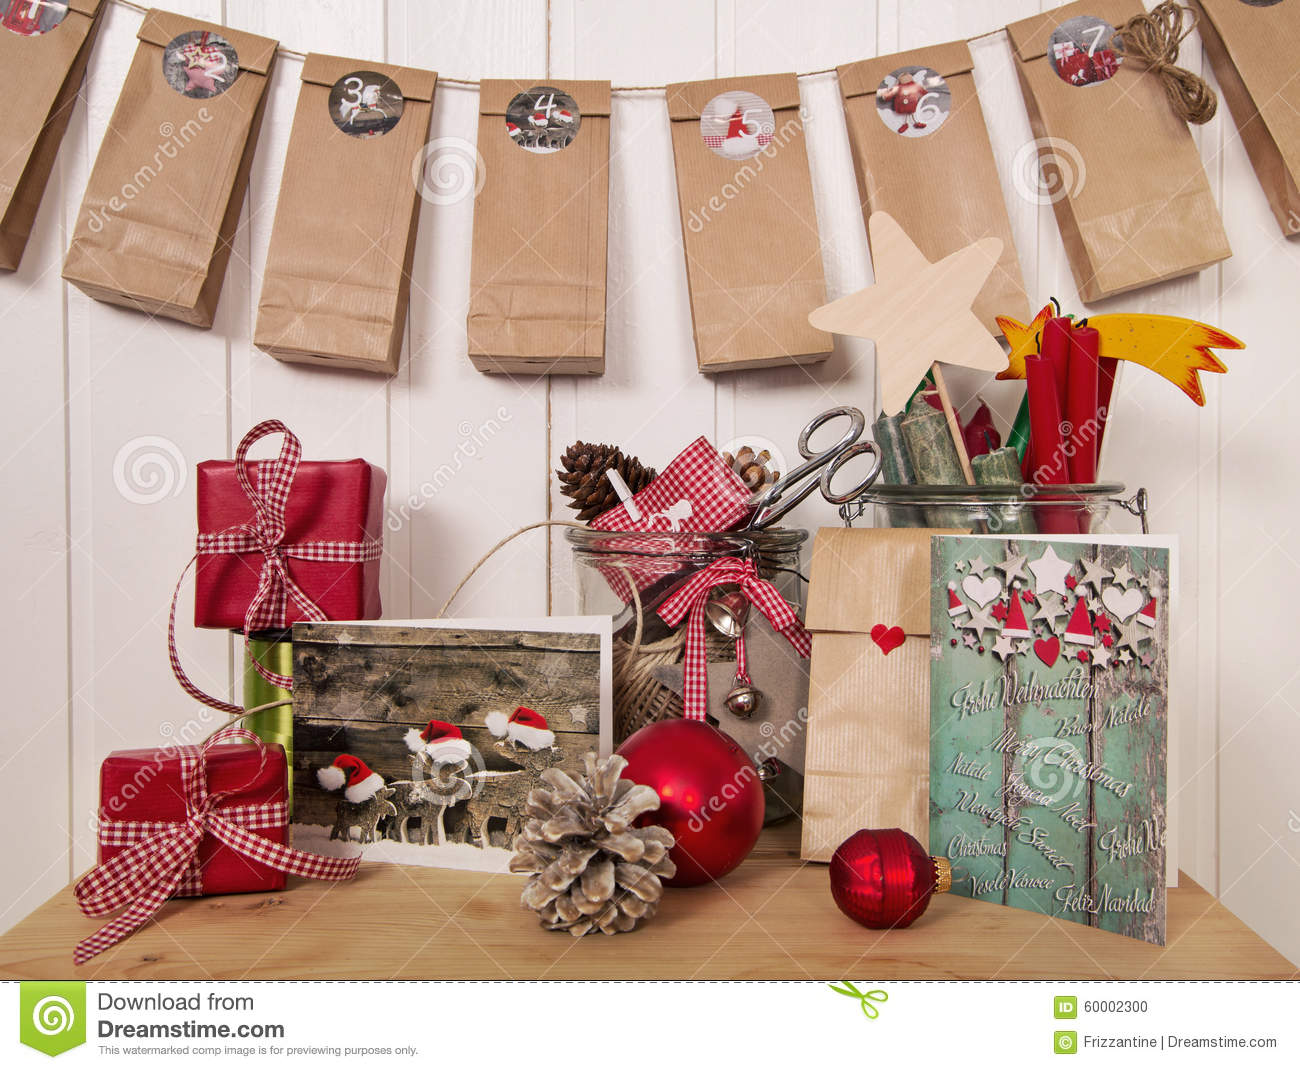 Handmade Christmas Presents And Advent Calendar In Red